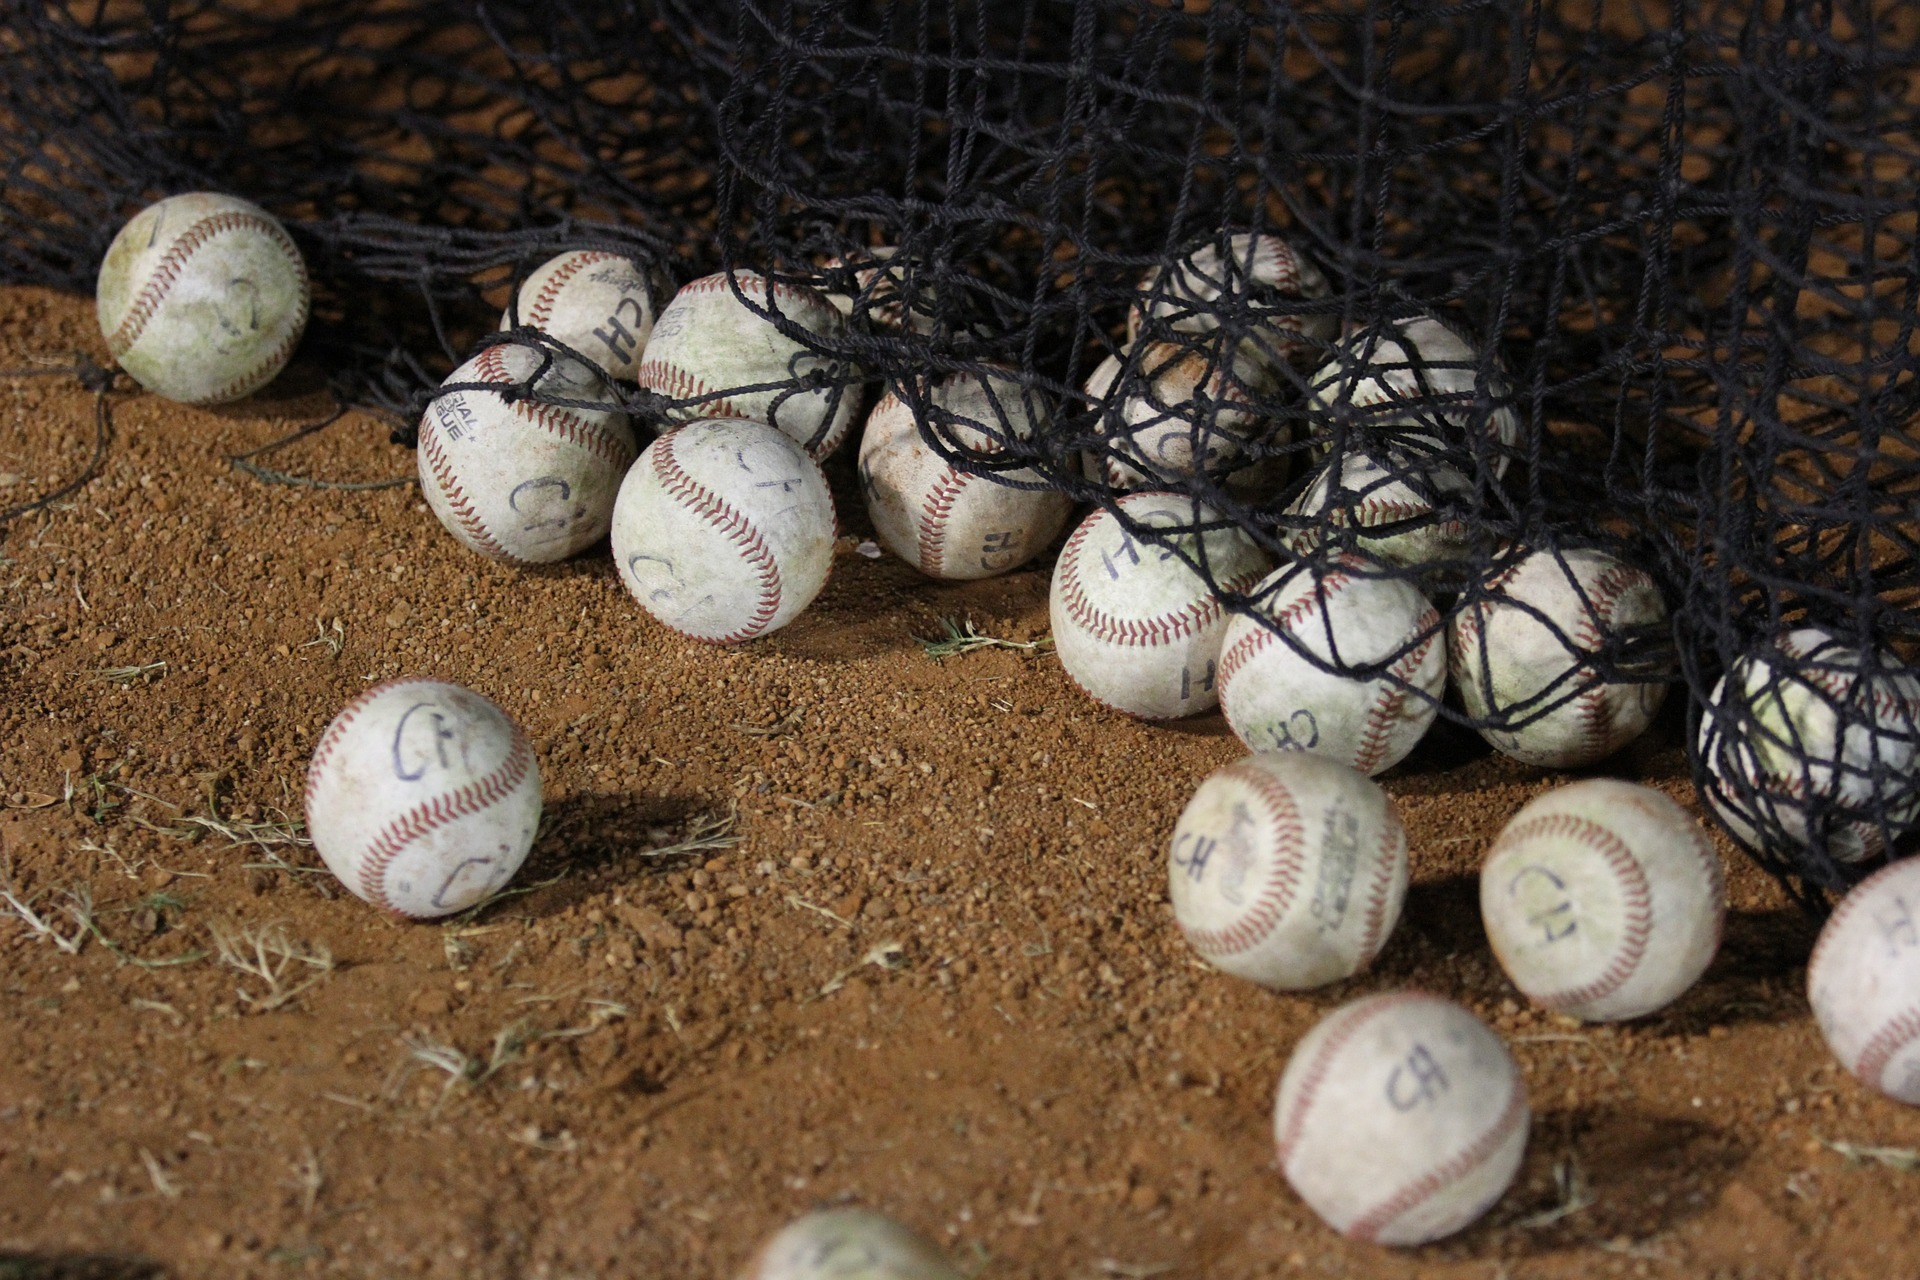 Pitching Lessons: The Importance of Off Season Training